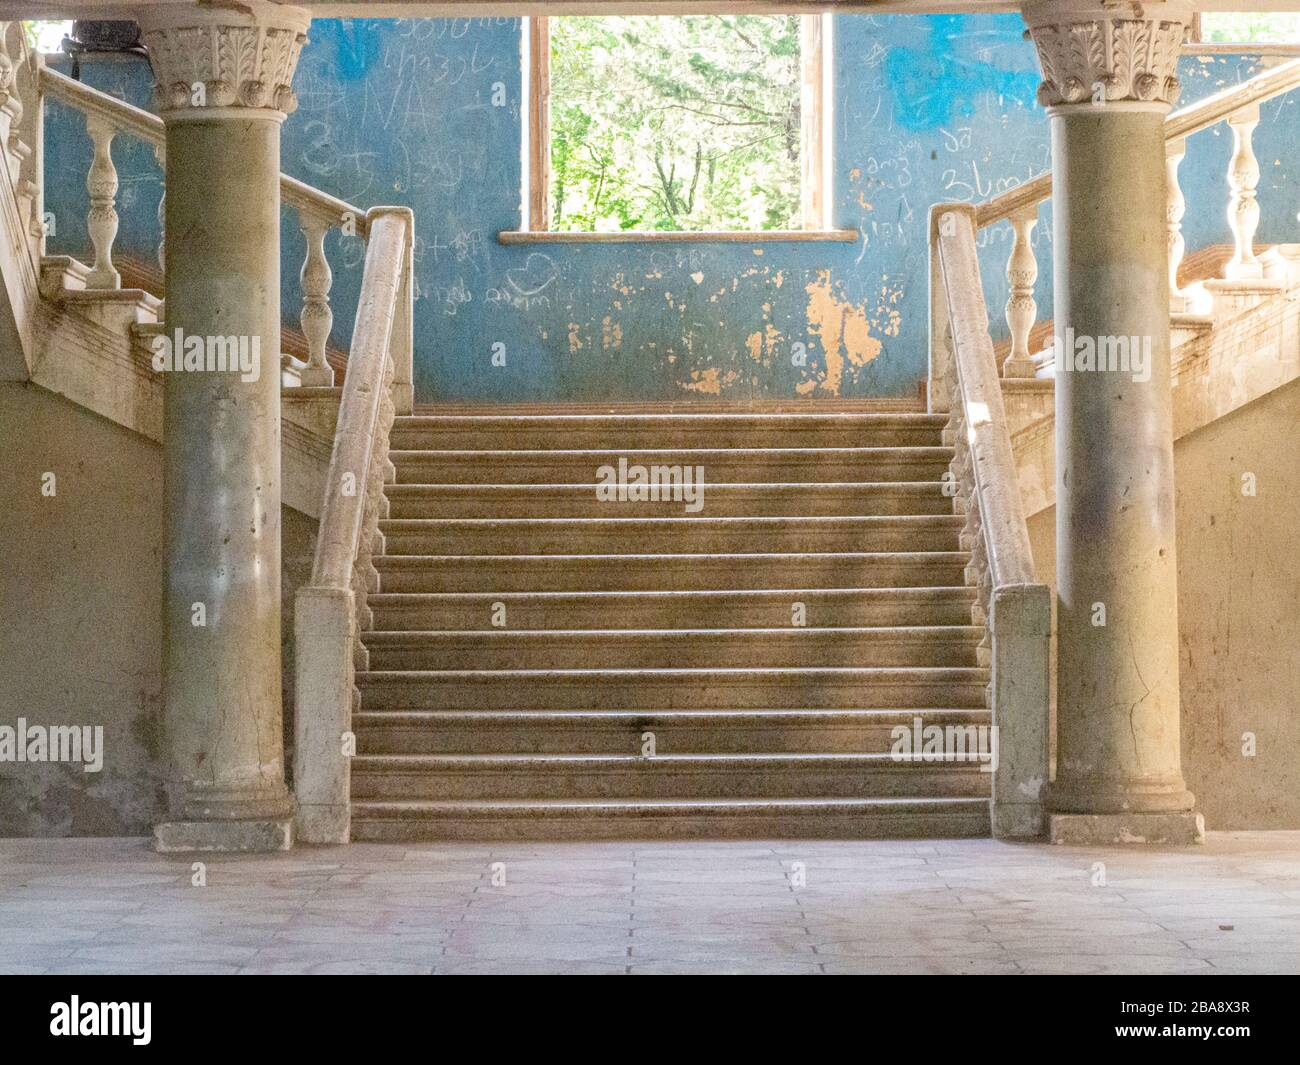 Abandoned Soviet Sanatoriums of Tskaltubo, Georgia. The decaying remains of a once-luxurious Soviet spa town. Stock Photo